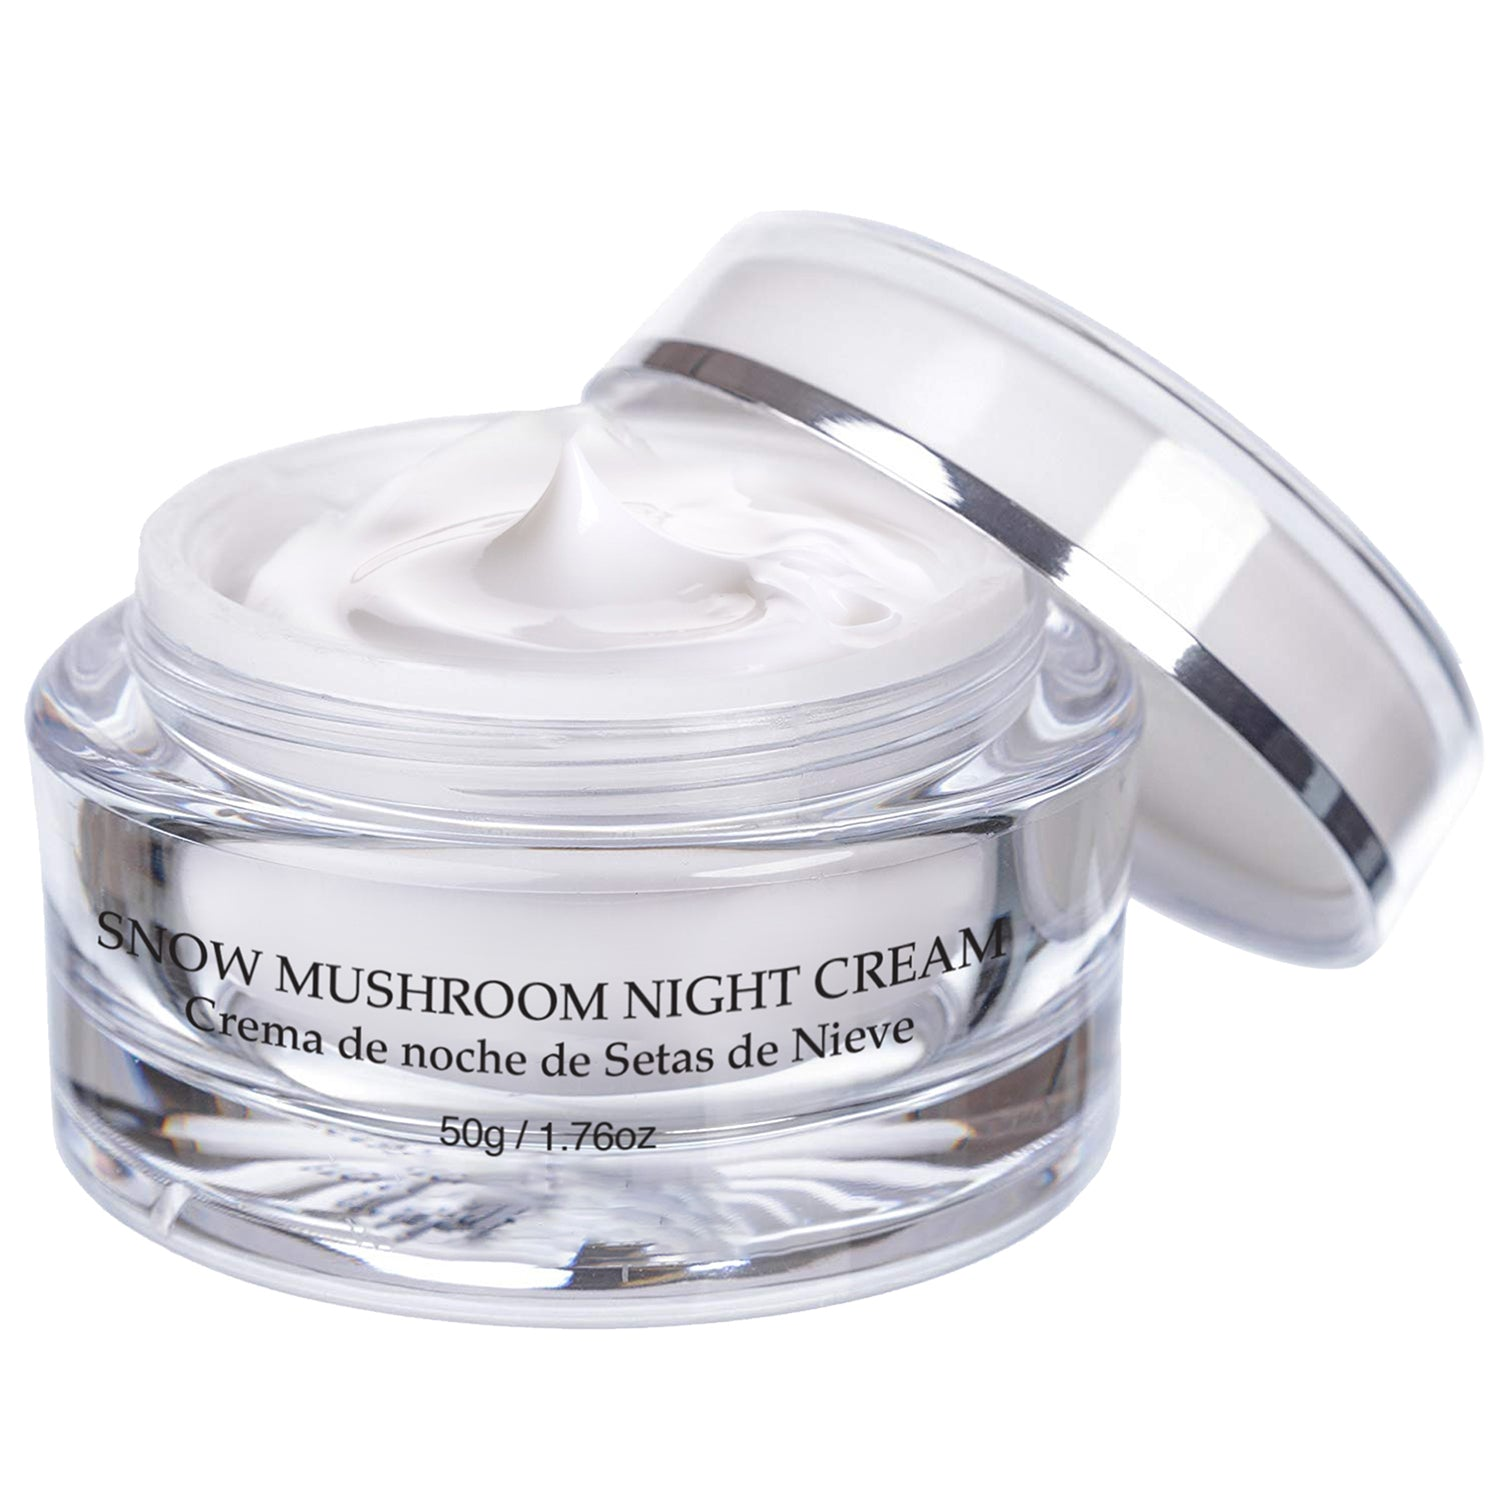 Vivo Per Lei Facial Night Moisturizer